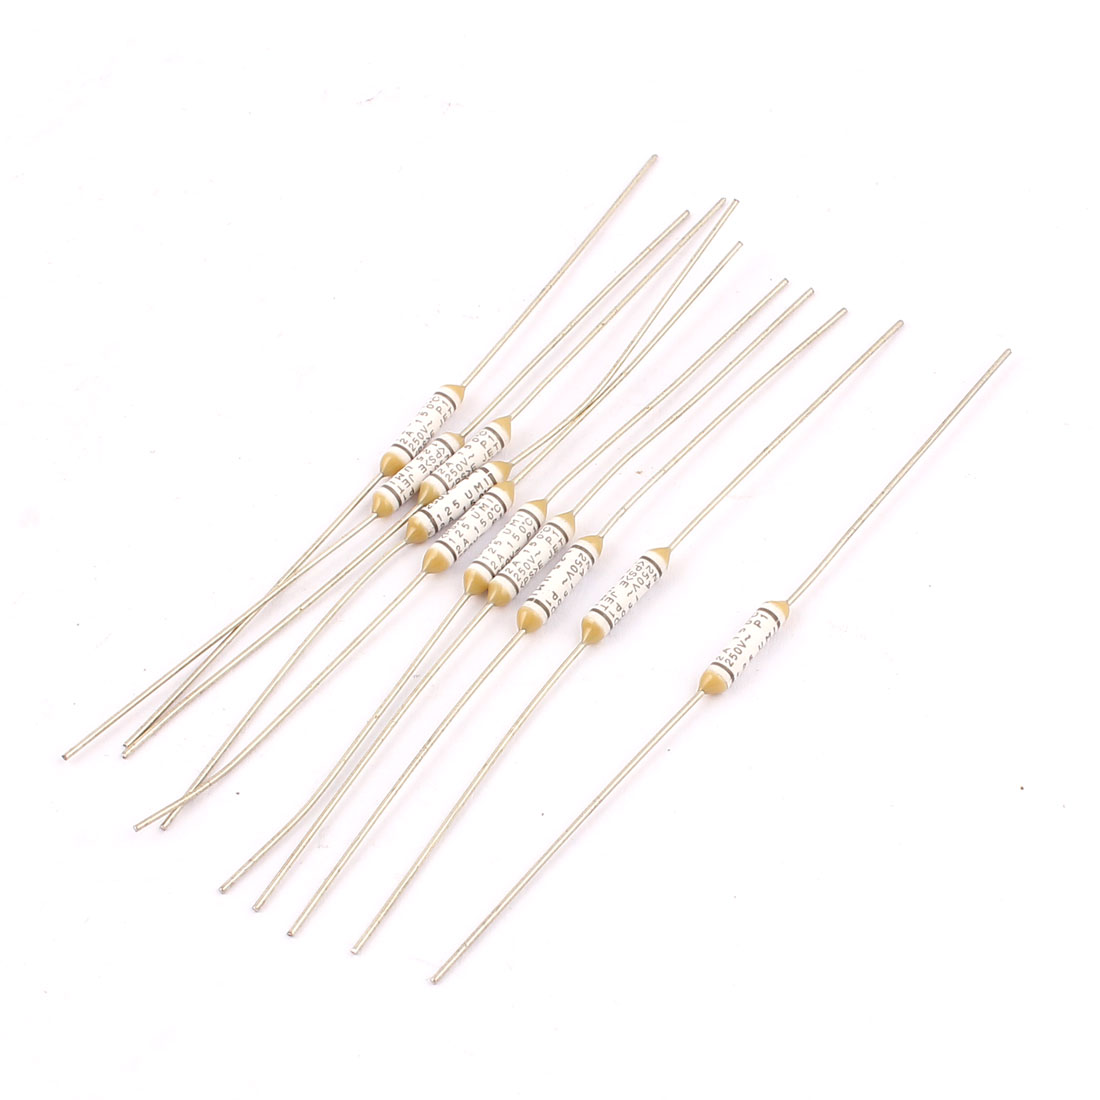 uxcell Thermal Fuse 250V 2A 150 Celsius Degree Temperature Control Double Leads Electrical Circuit Cutoff 10pcs